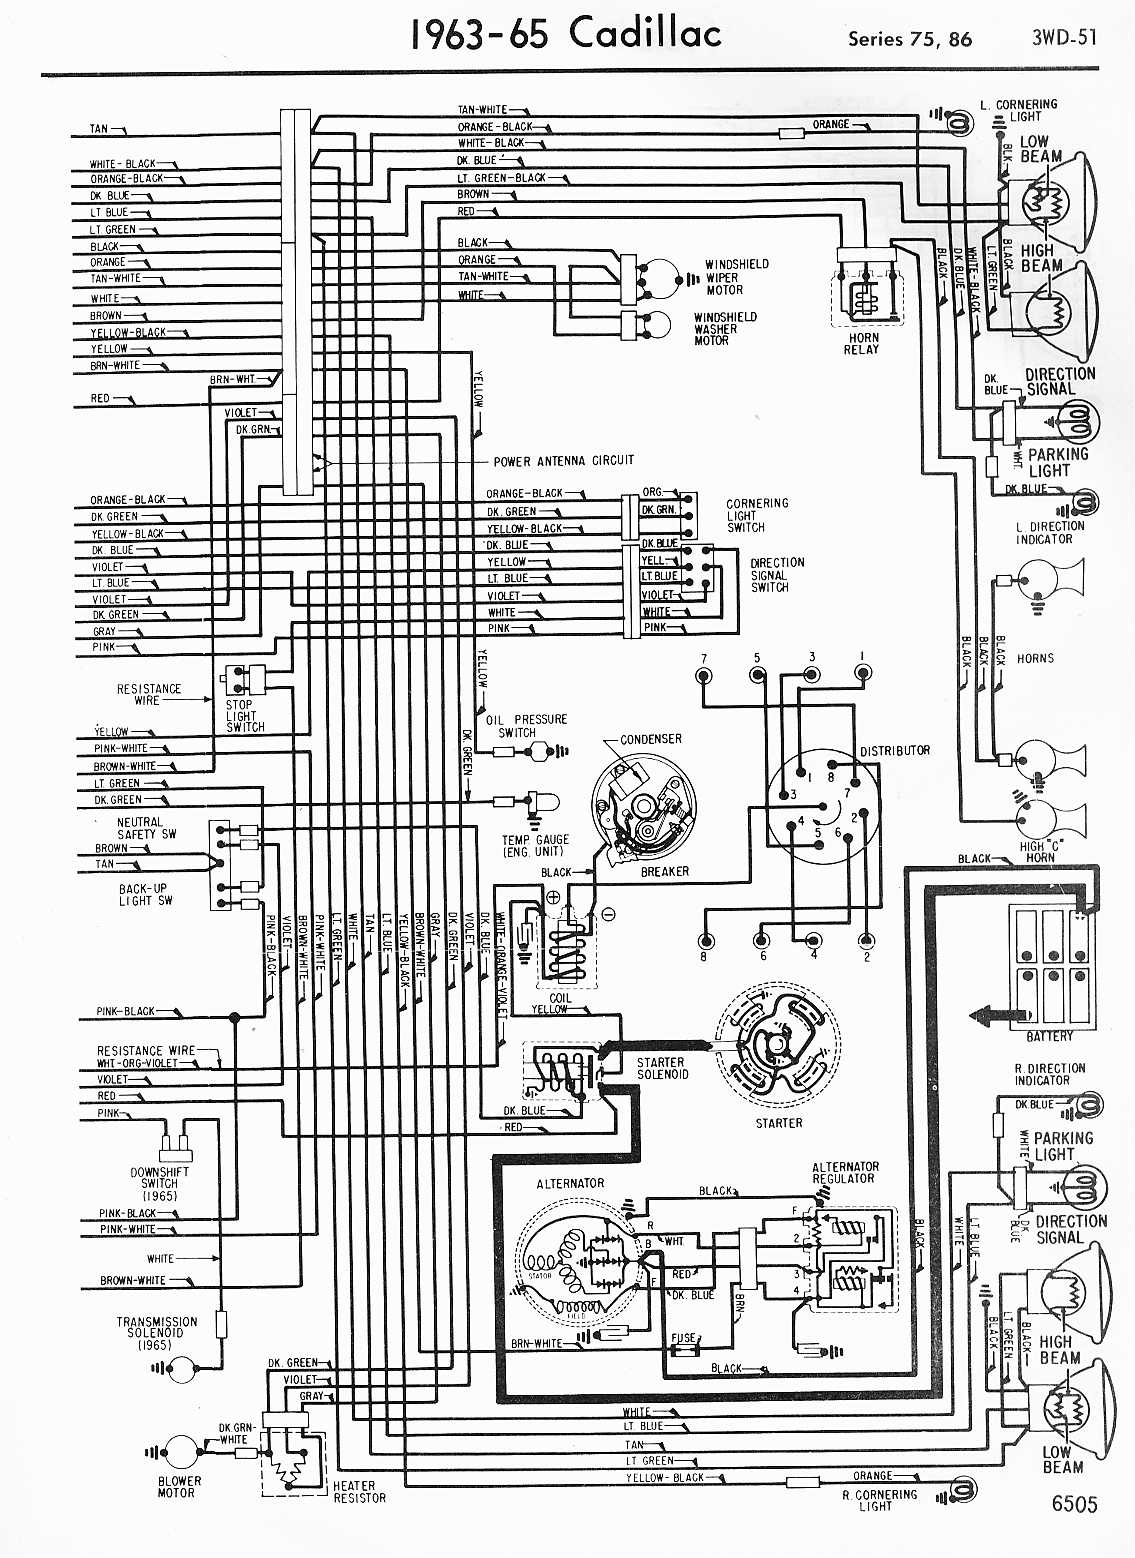 MWireCadi65_3WD 051 2000cad eldorado wiring diagram,eldorado \u2022 j squared co 1991 cadillac deville wiring diagram at mifinder.co